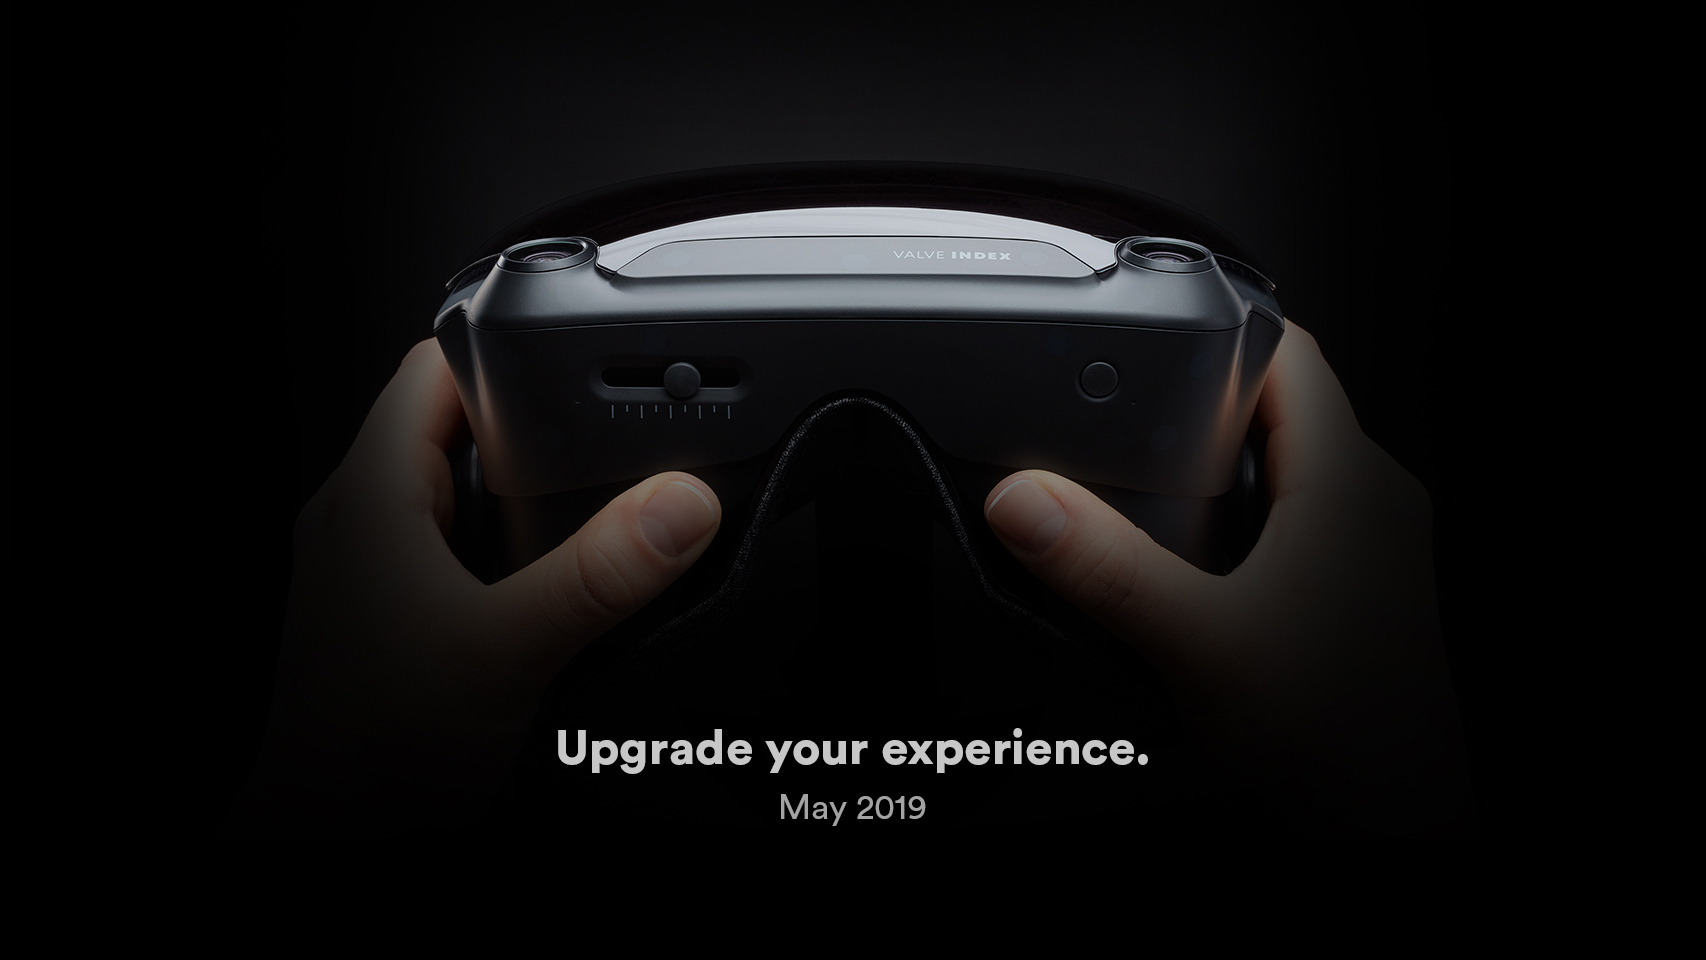 Valve Index son las gafas de realidad virtual de Valve